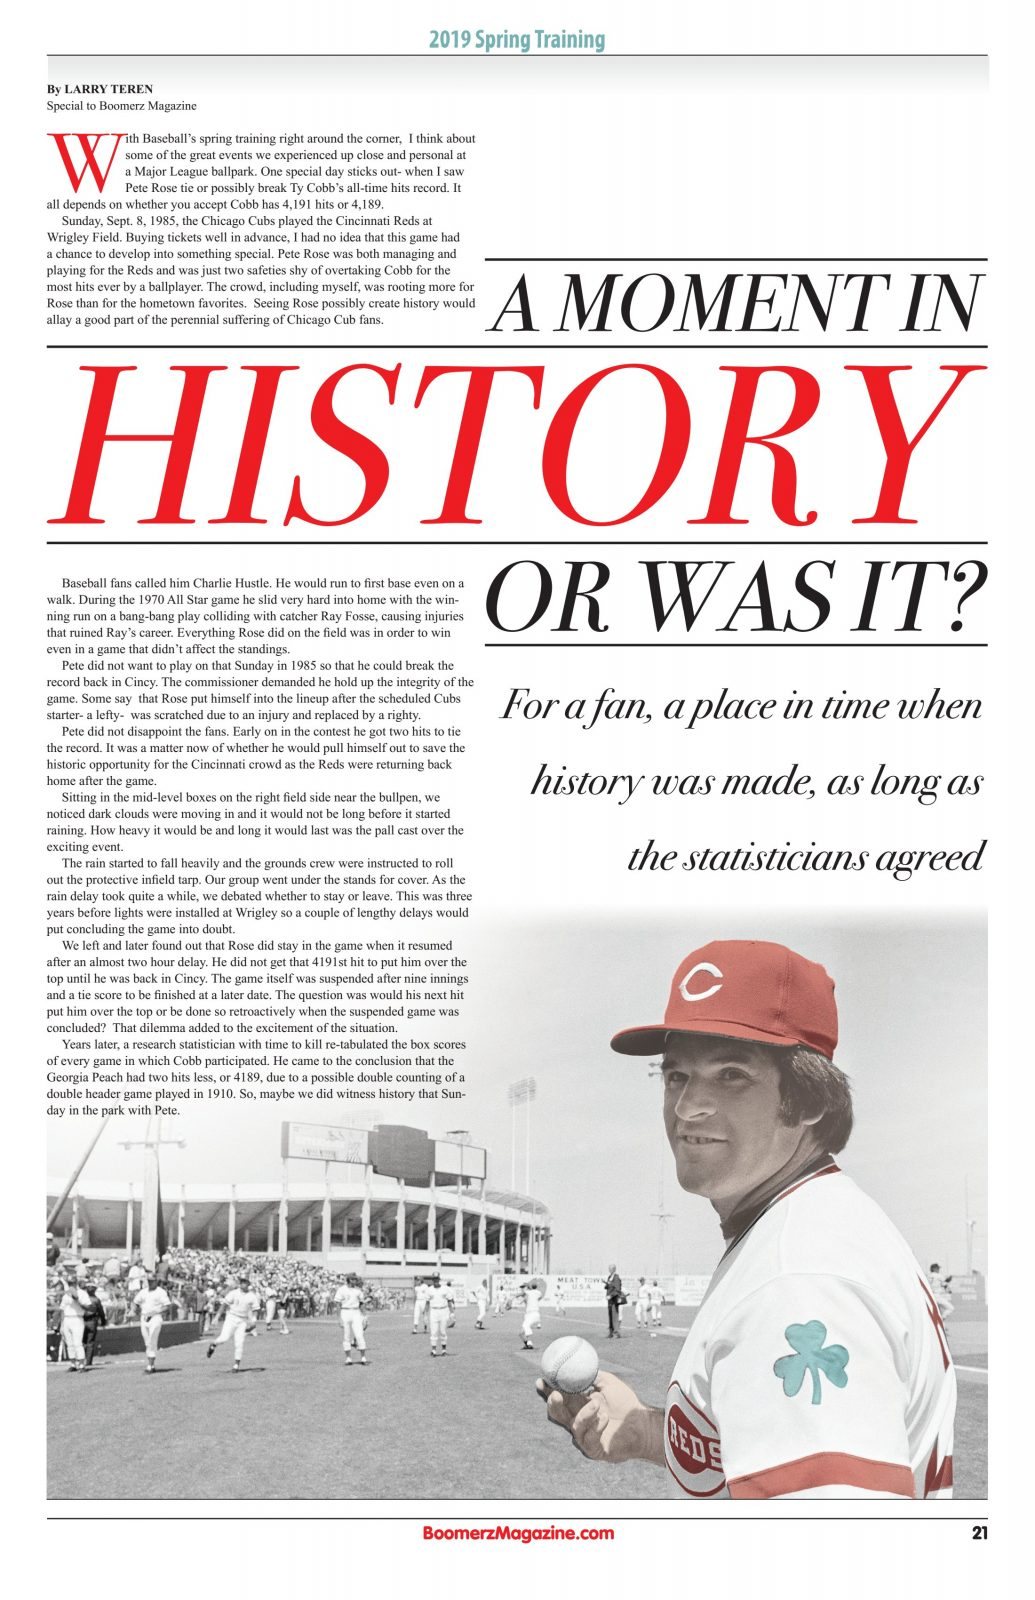 A Moment in History - Pete Rose